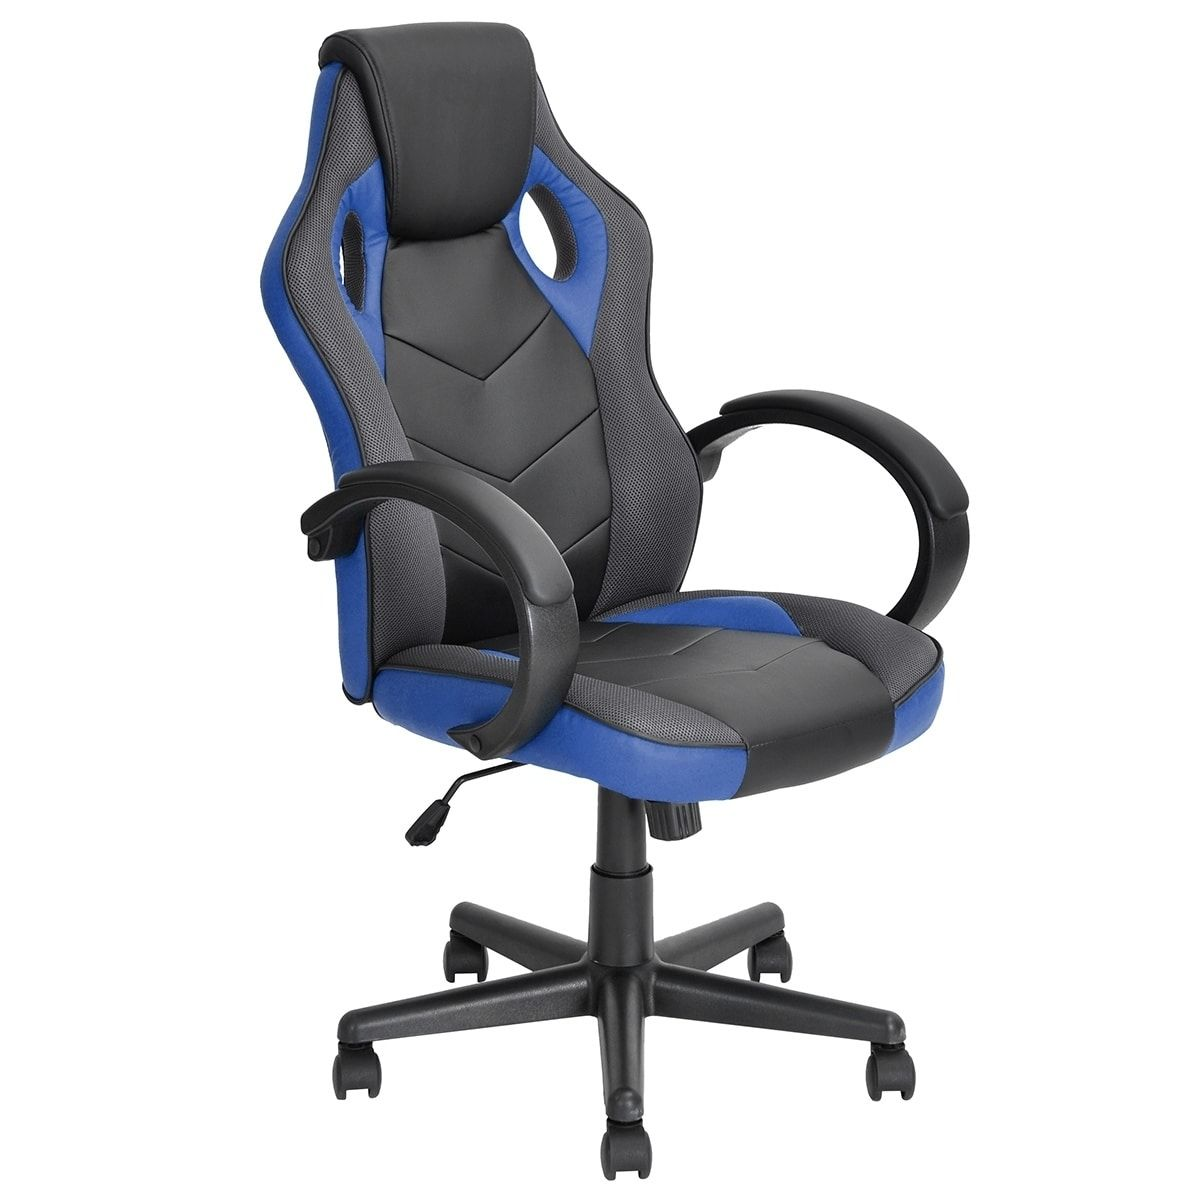 Furniture R Ergonomic Home Office Racing Gaming Chair Blue In